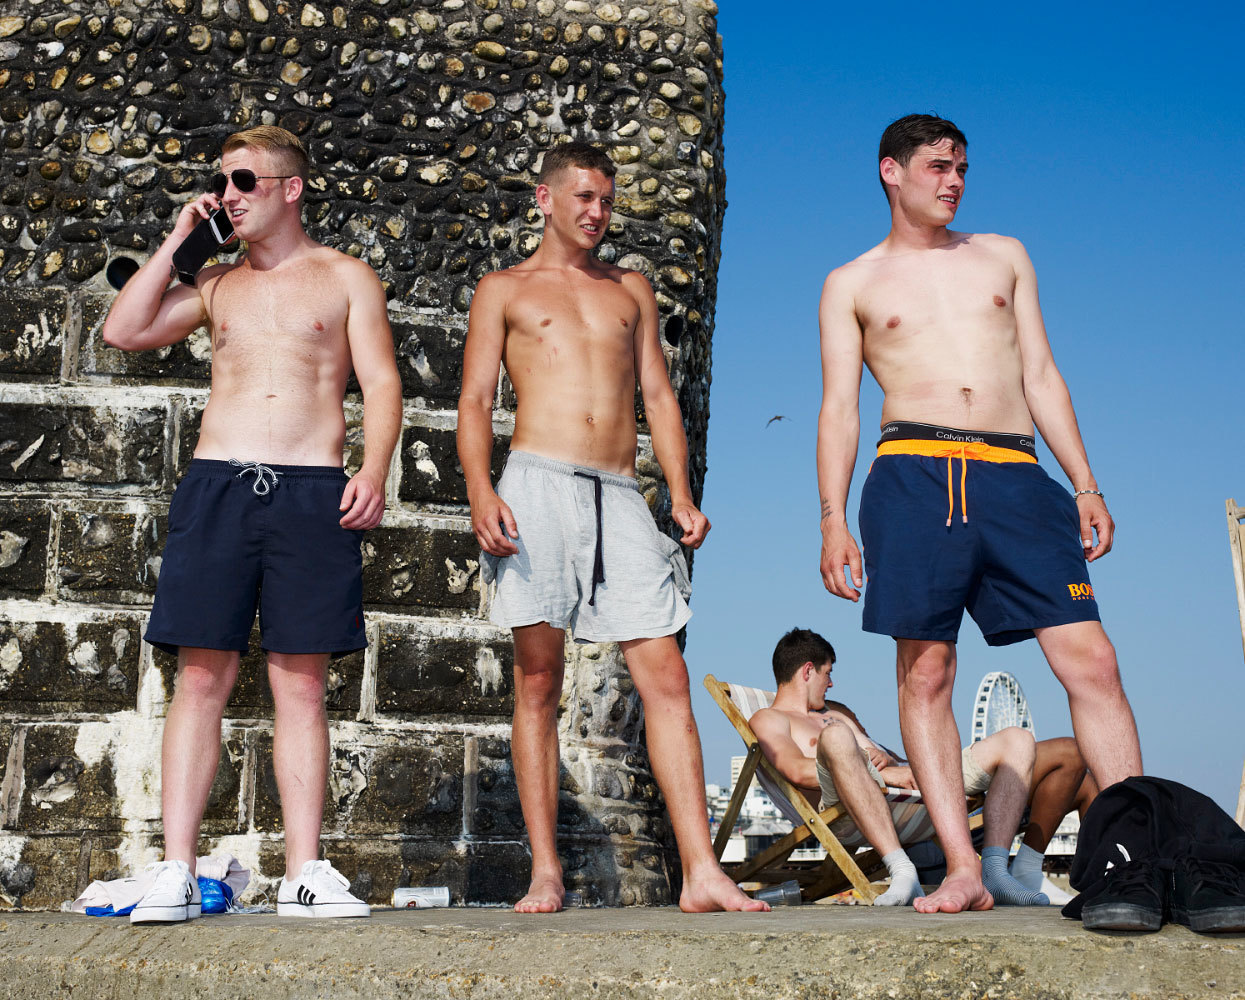 Brighton Boys, by Jessica van der Weert